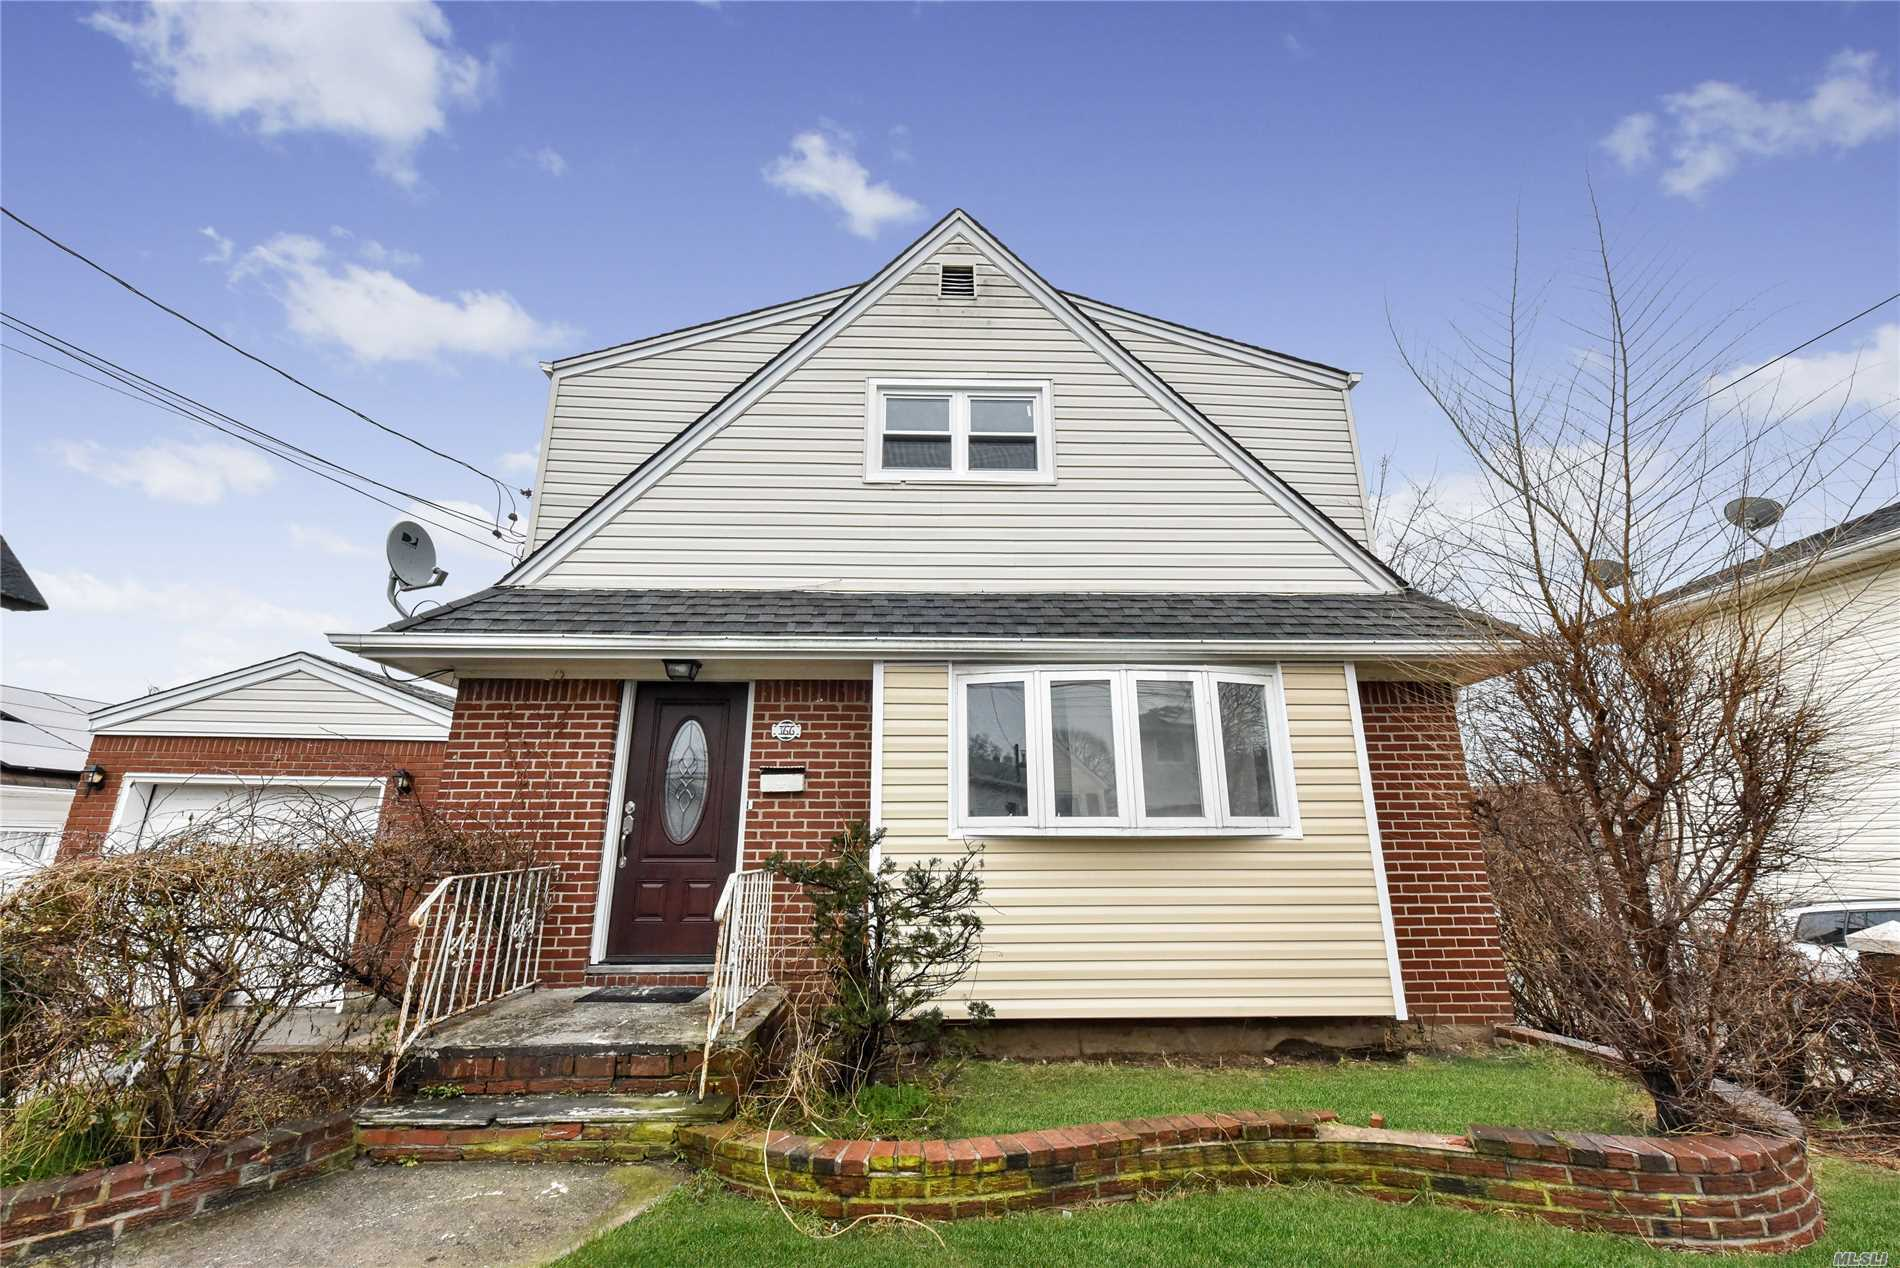 Elmont. Huge One Family Cape With 3 Levels With Room For Mom And Dad. New Kitchen, New Bathrooms, New Appliances And More. Hard Wood Floors Throughout. Tile Finished Huge Basement With High Ceilings And A Separate Entrance To The Basement.